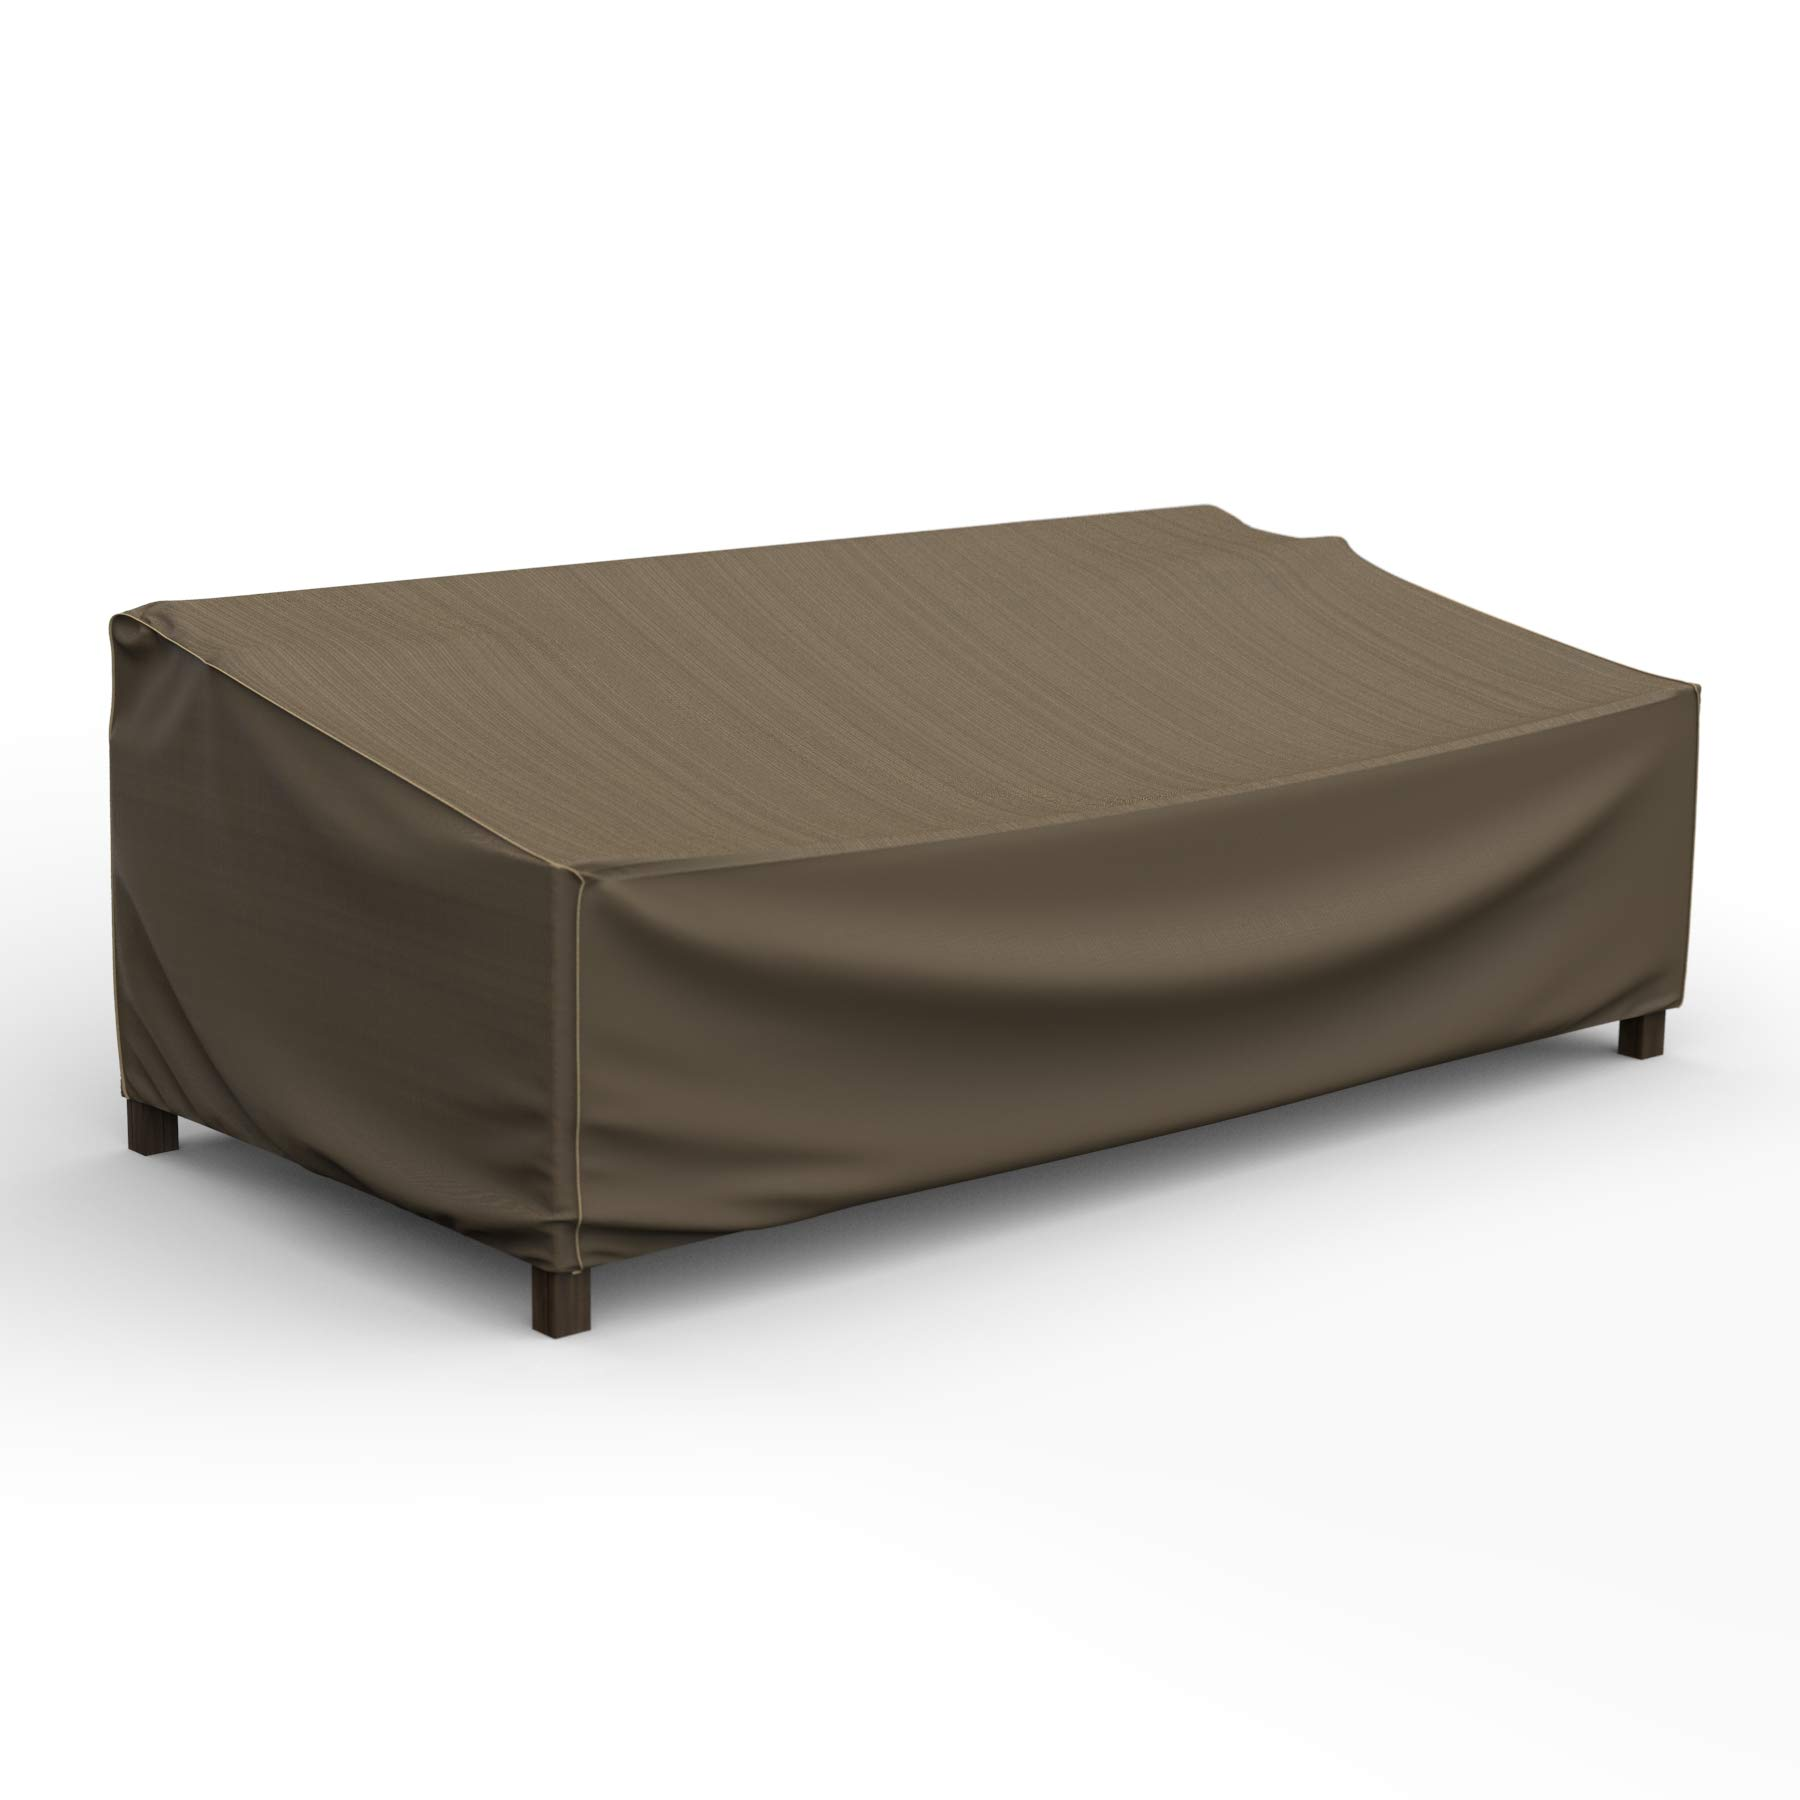 EmpireCovers NeverWet Platinum Outdoor Patio Loveseat Cover, Extra Large (Black and Tan Weave)